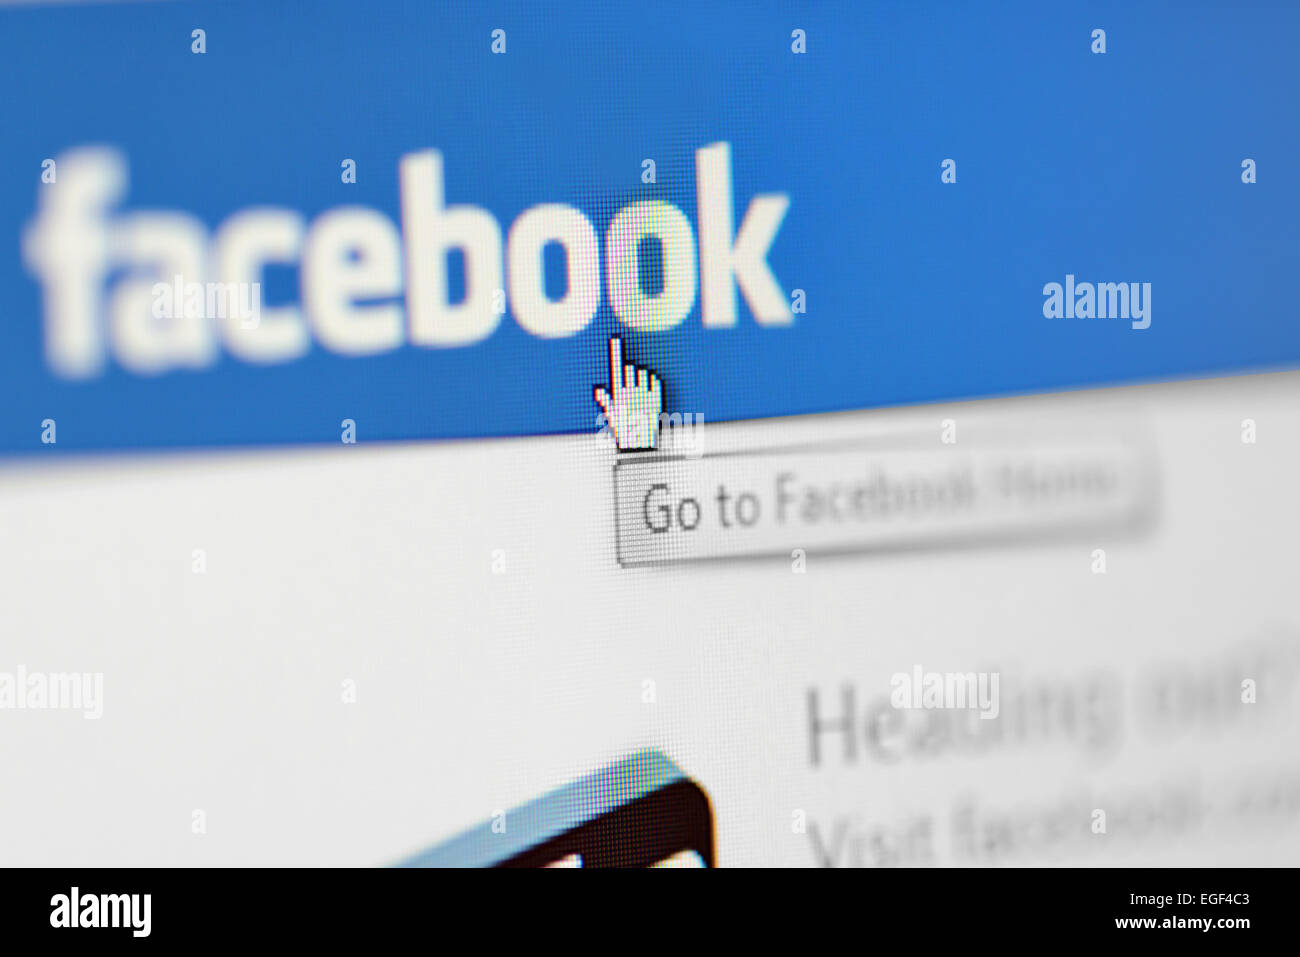 Galati, Romania, february 24, 2015: Close-up image of  Facebook Home page on Laptop Screen - Stock Image